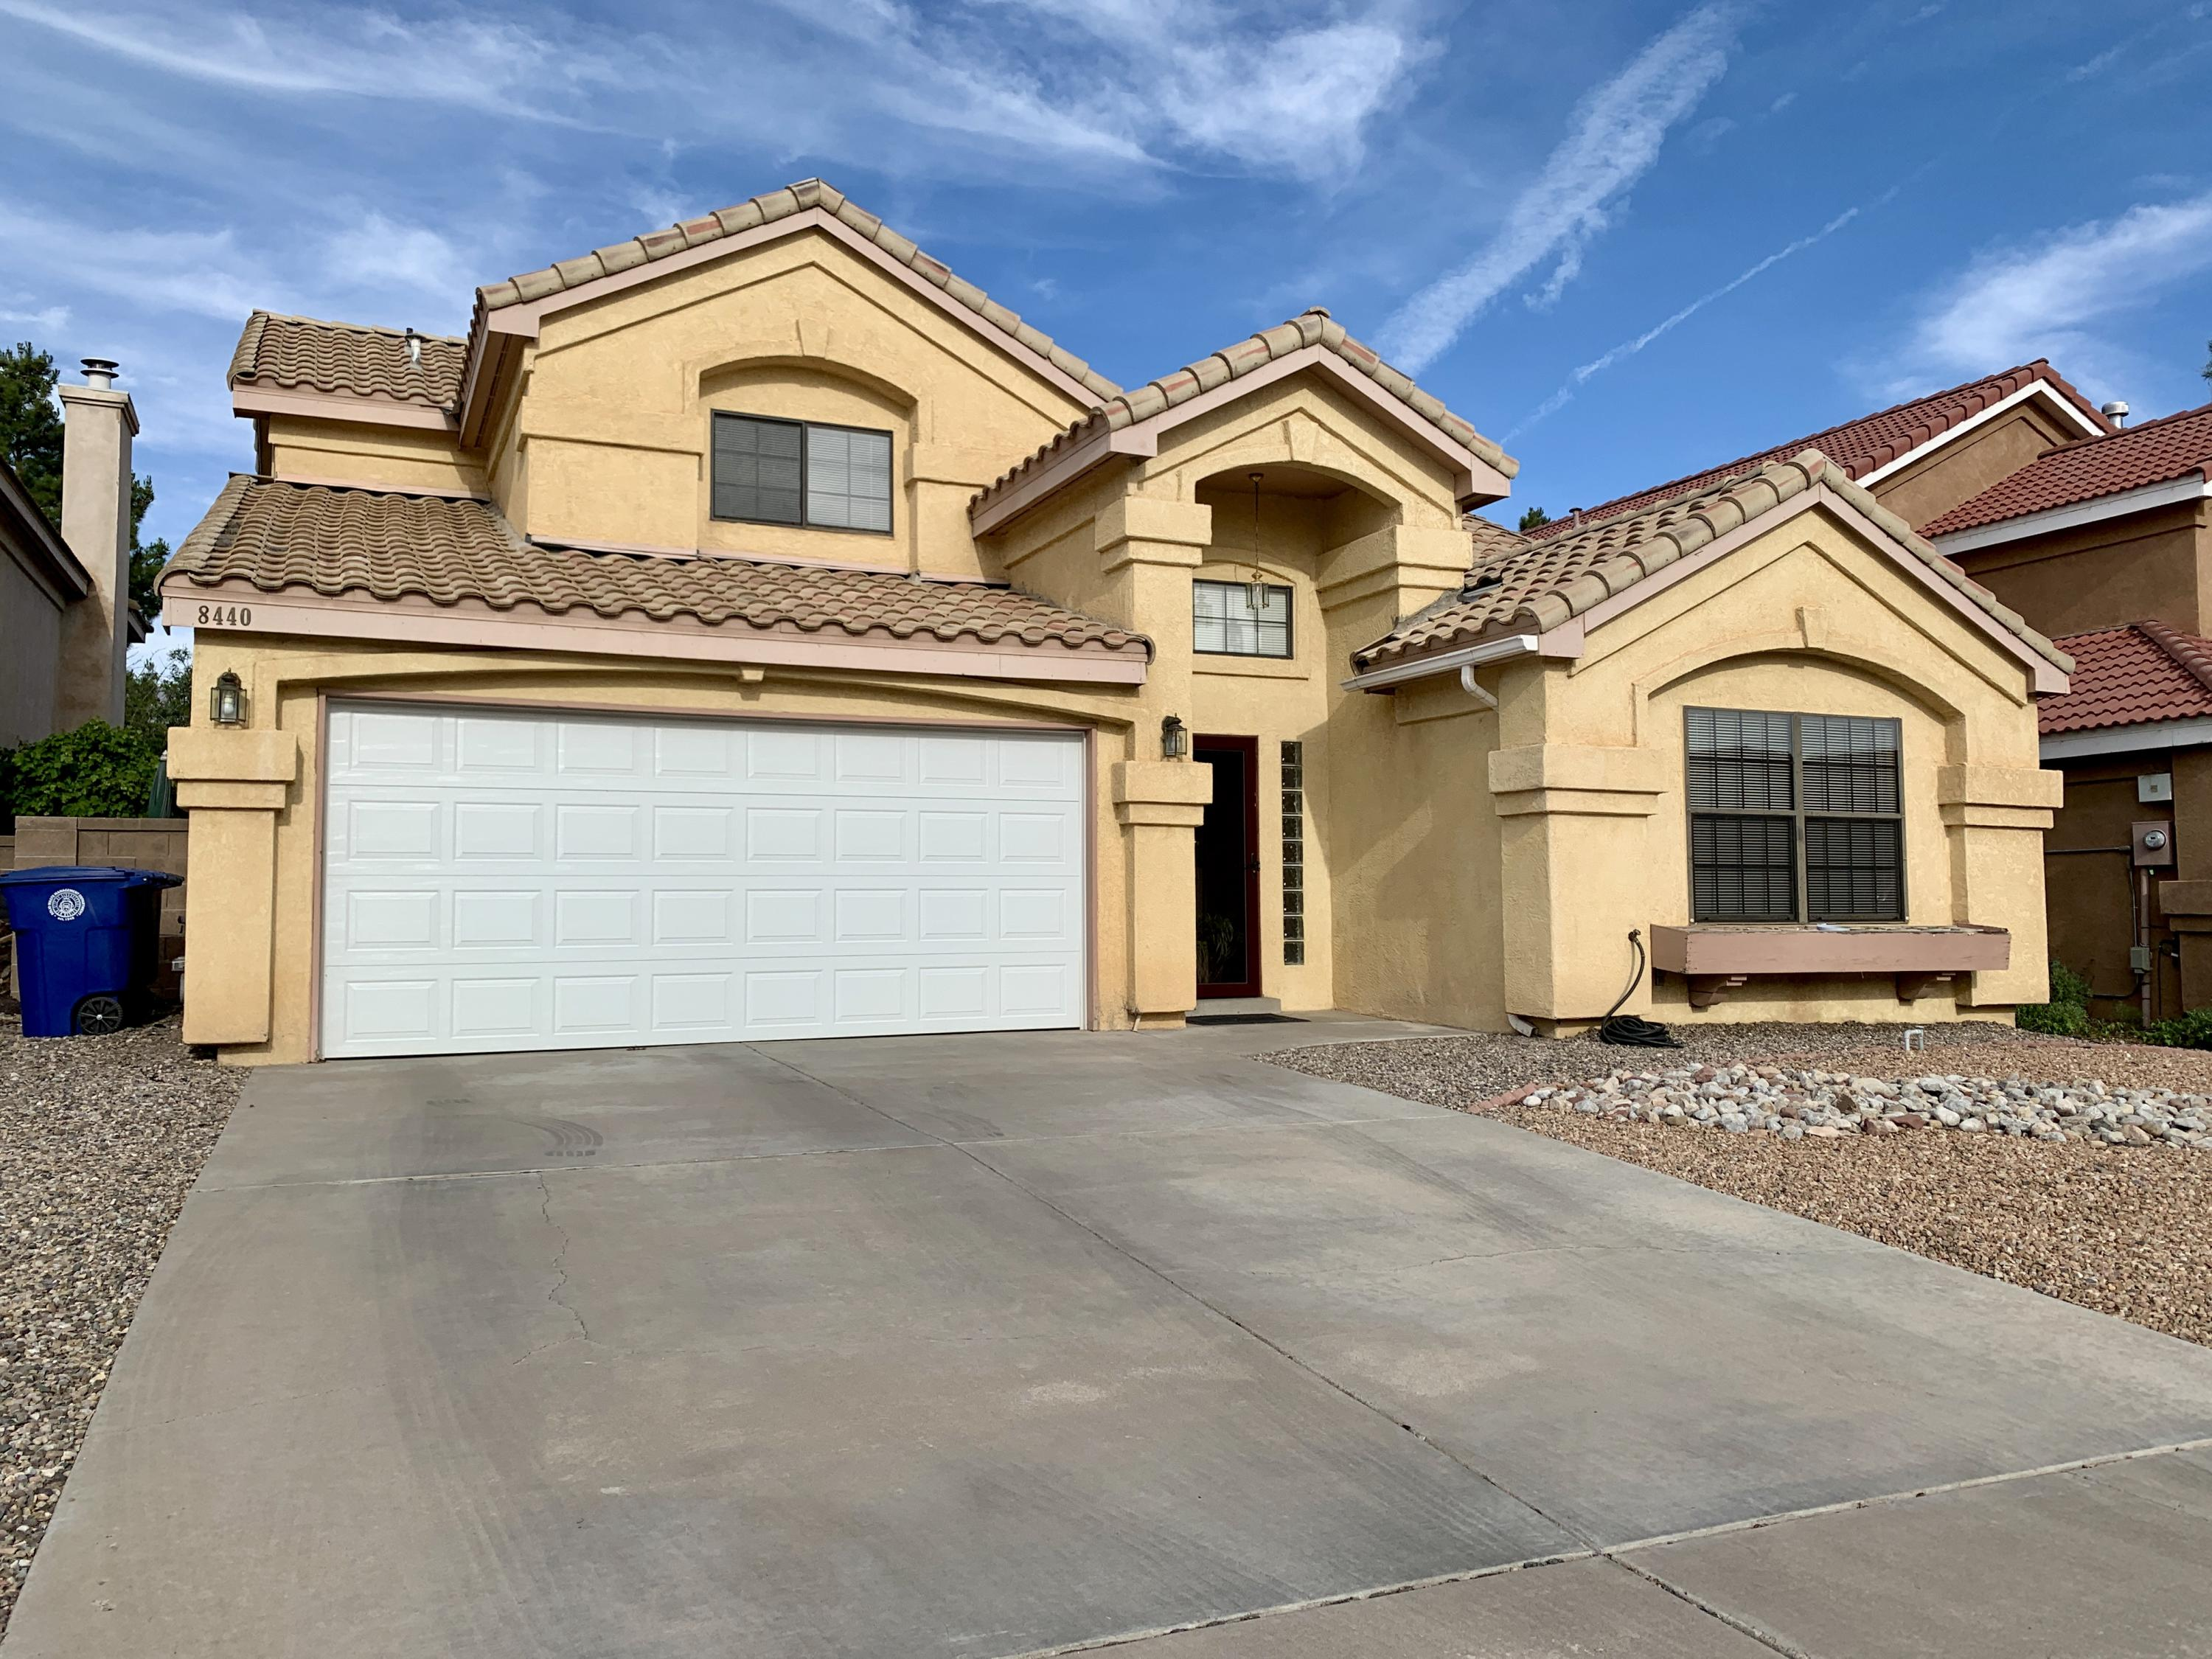 This NE heights home quite literally has it all! Located just walking distance from La Cueva HS, it is in one of the highest rated school districts in NM. Separate formal Living/Dining rooms in front, Kitchen, Breakfast Nook, Family room in the back of the home. With 4 bedrooms, Including one on the main floor, 3 full bathrooms, Master is upstairs with a fantastic view deck. The east facing backyard is a private retreat, sunny in the morning, shady and cool in the evening.